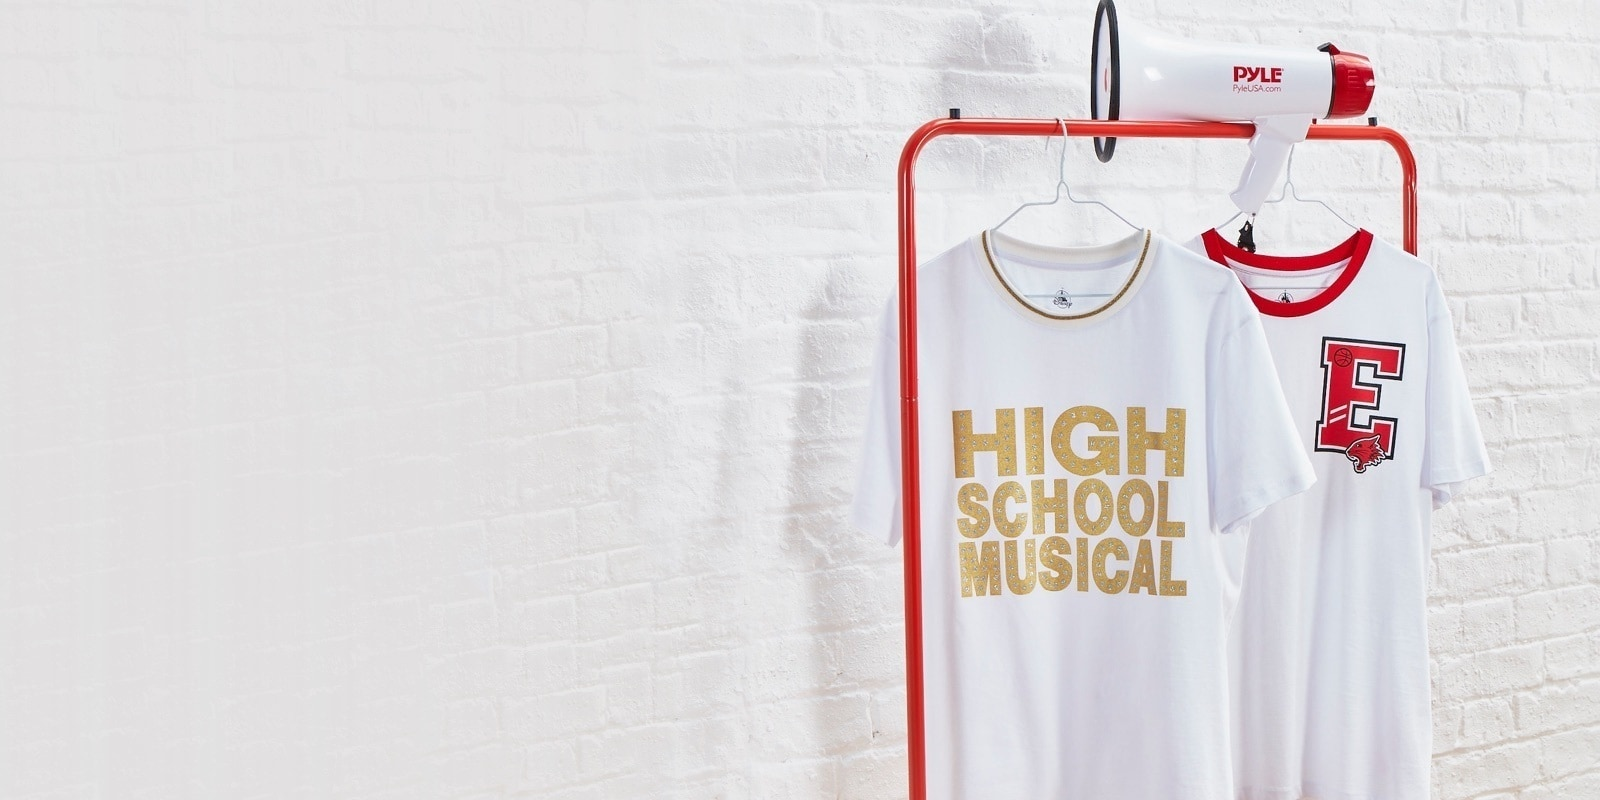 Unisex adult clothing inspired by High School Musical